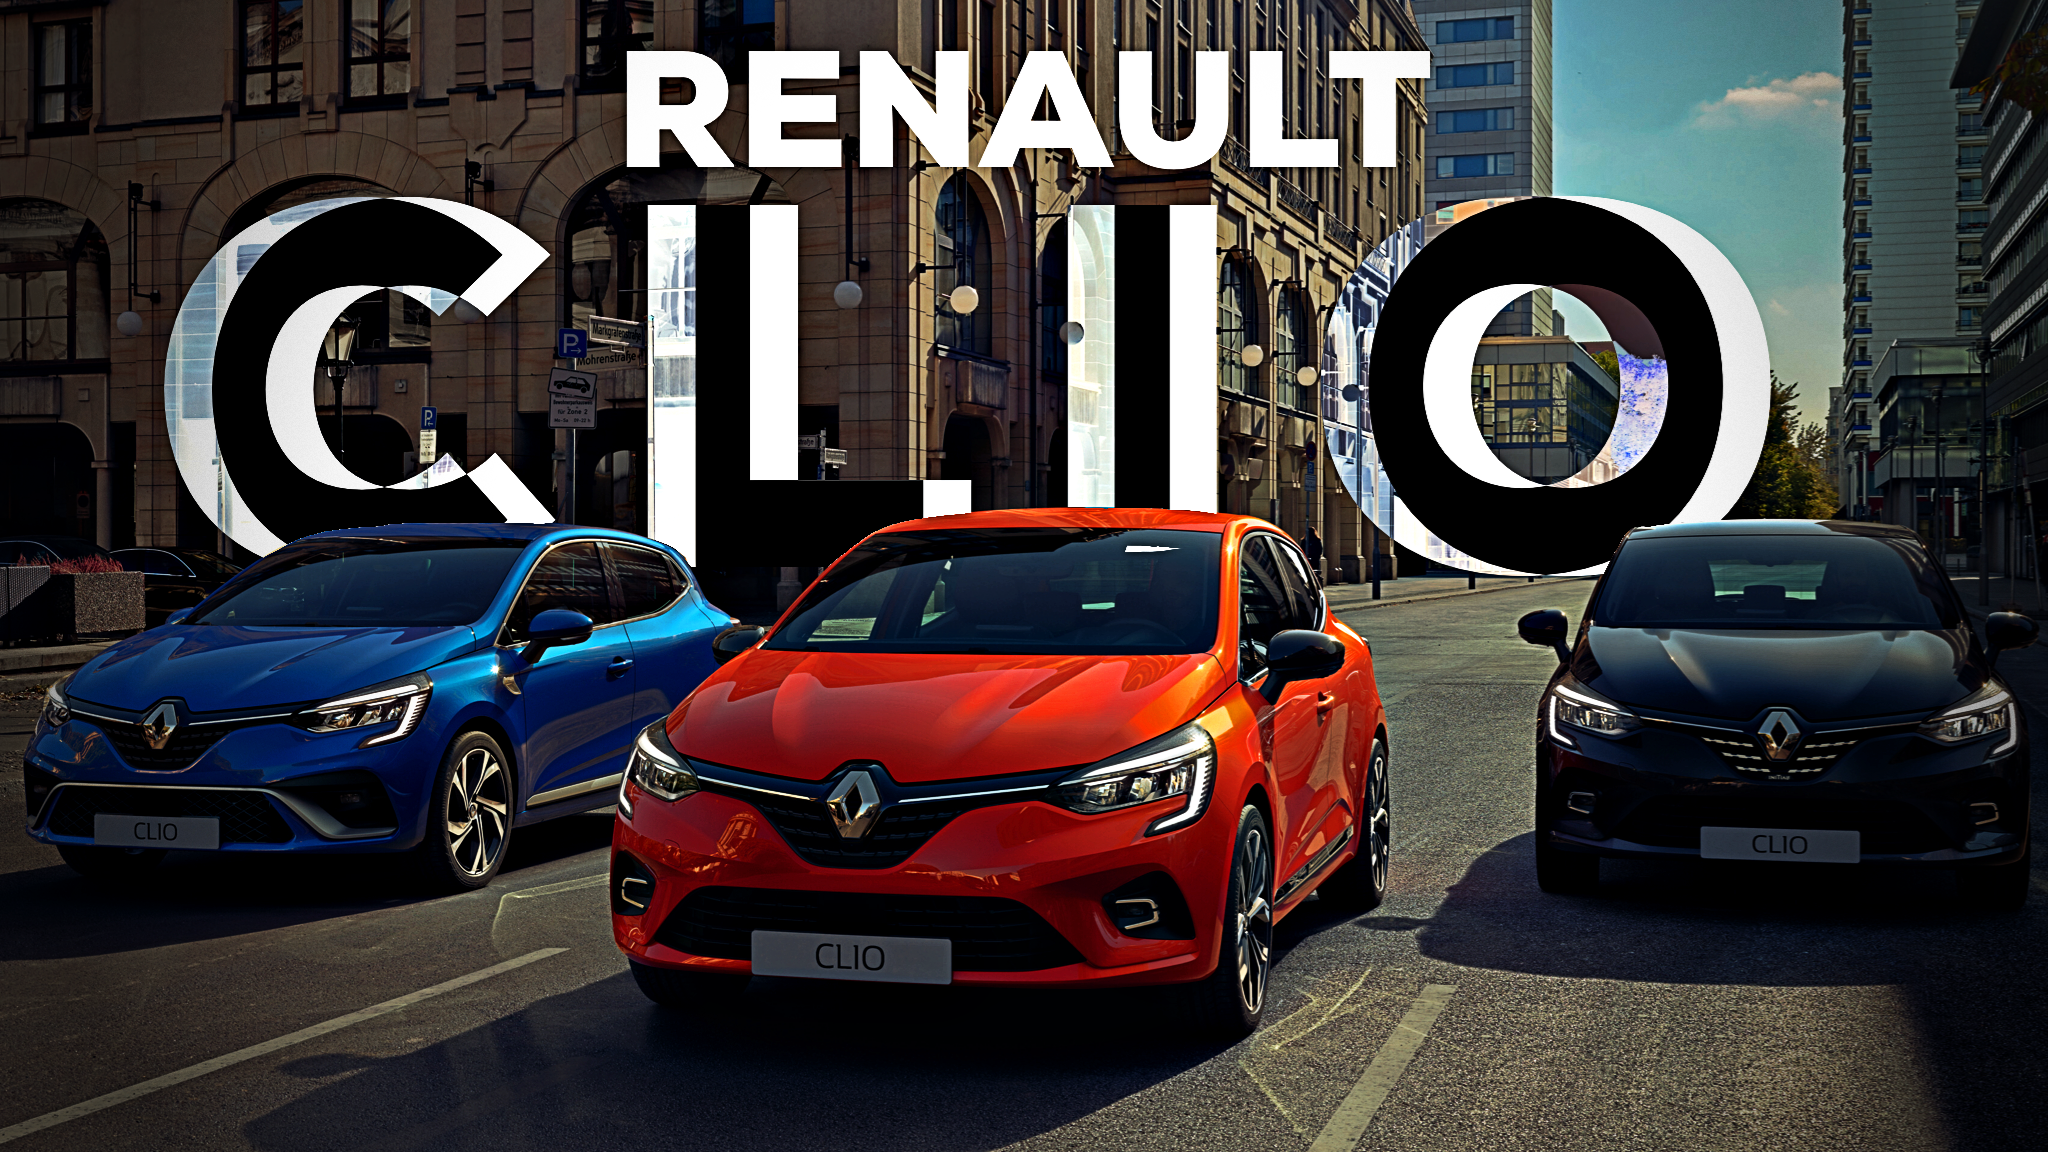 All-New Renault Clio (Mk5) Brings A-Game To The Fore